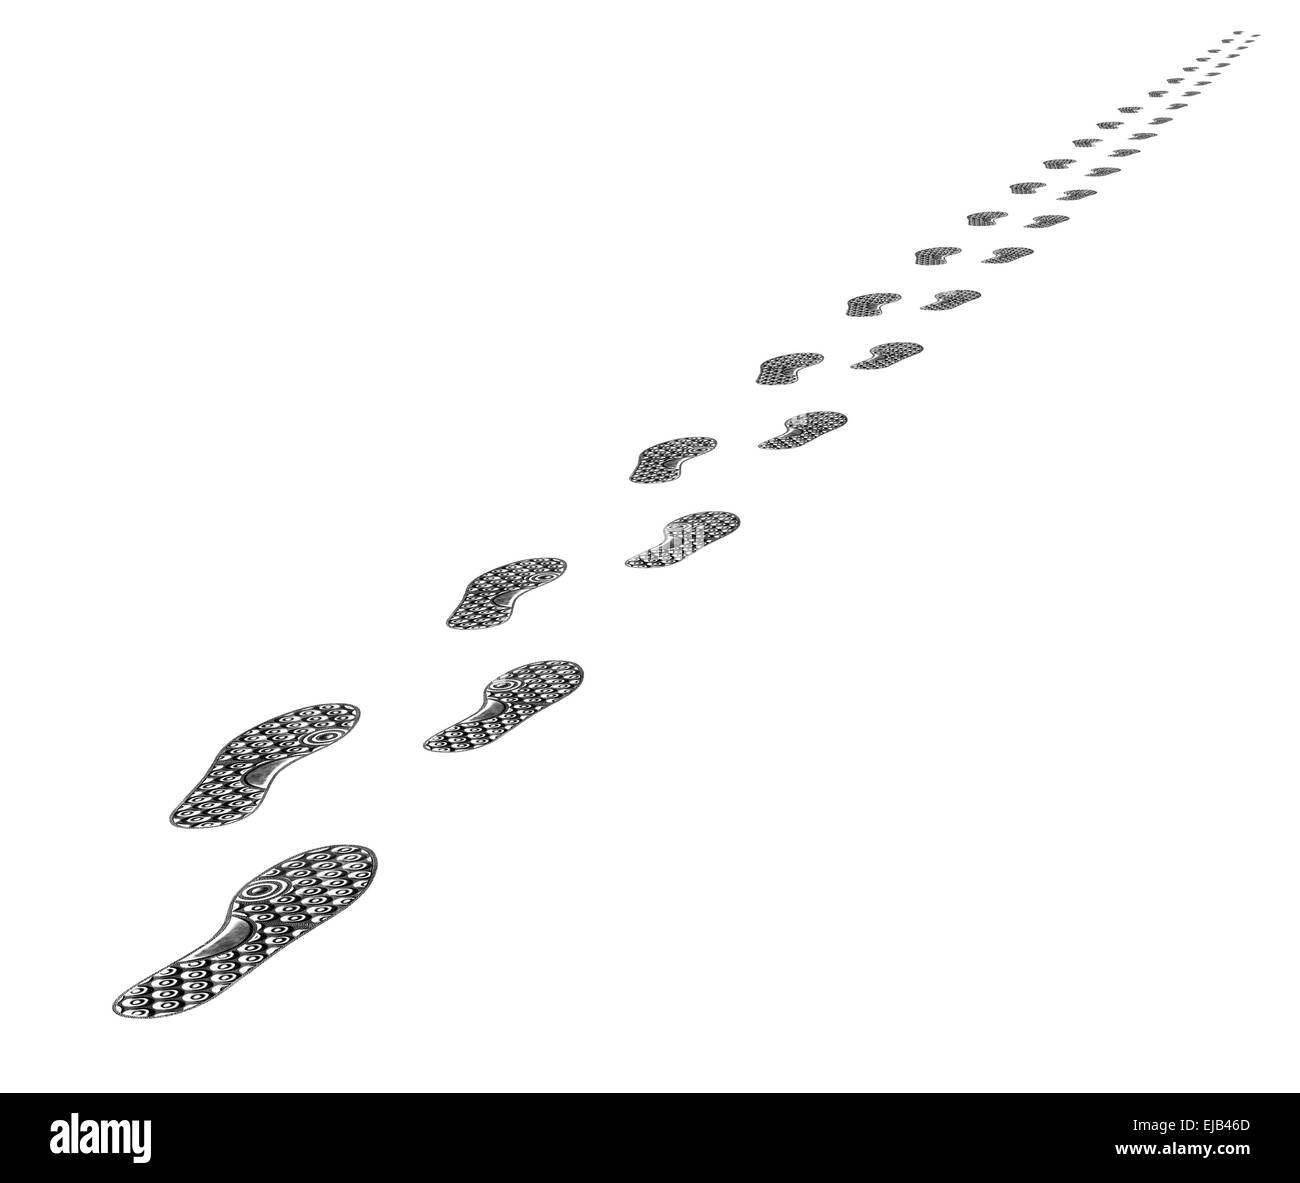 Tracks of shoes - Stock Image